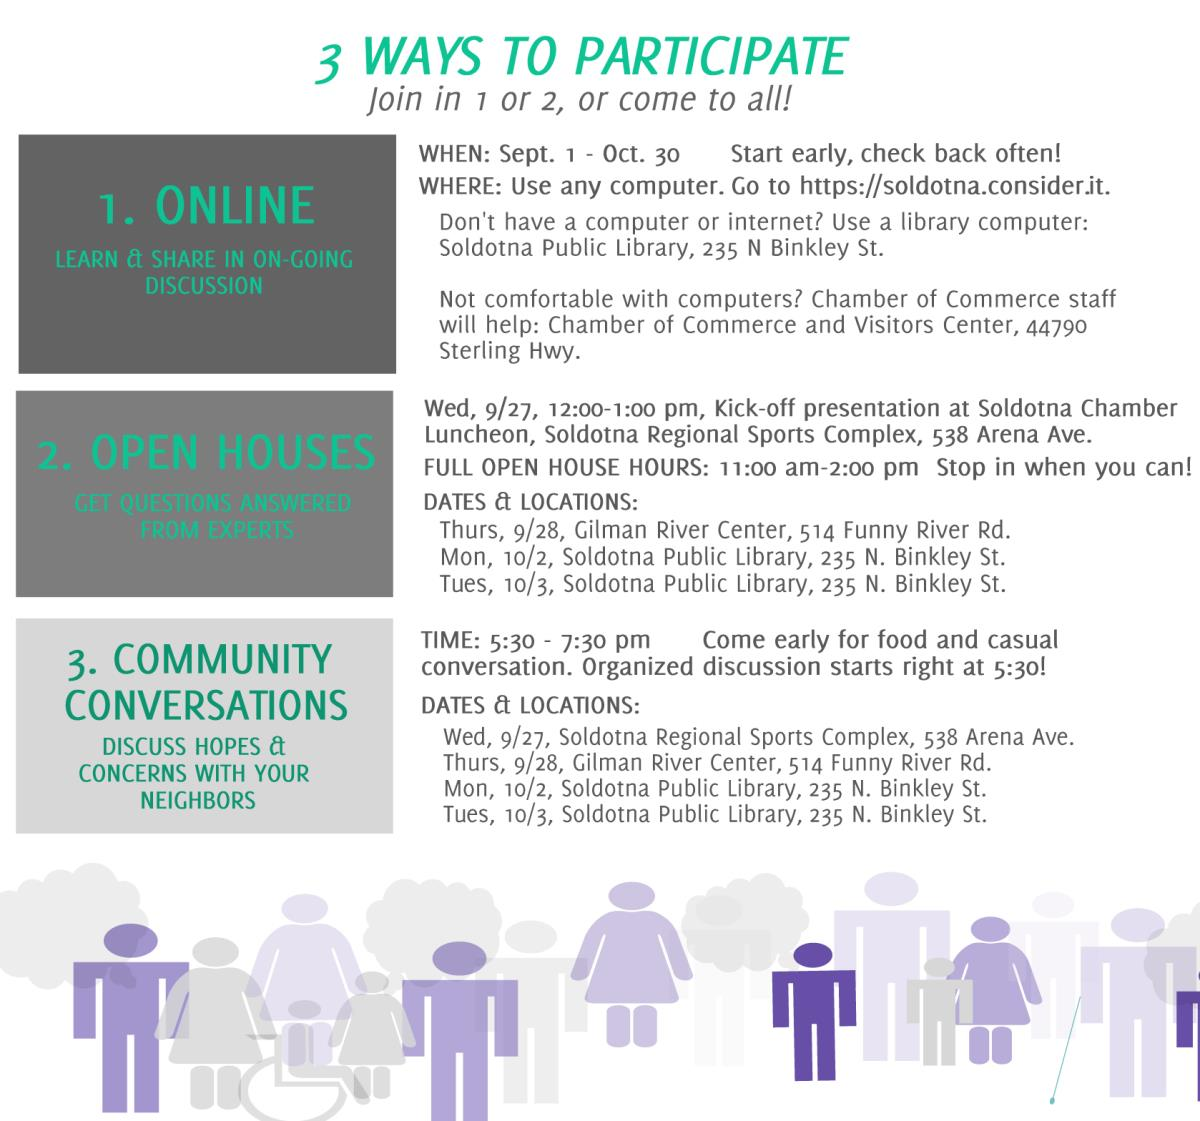 3 ways to participate